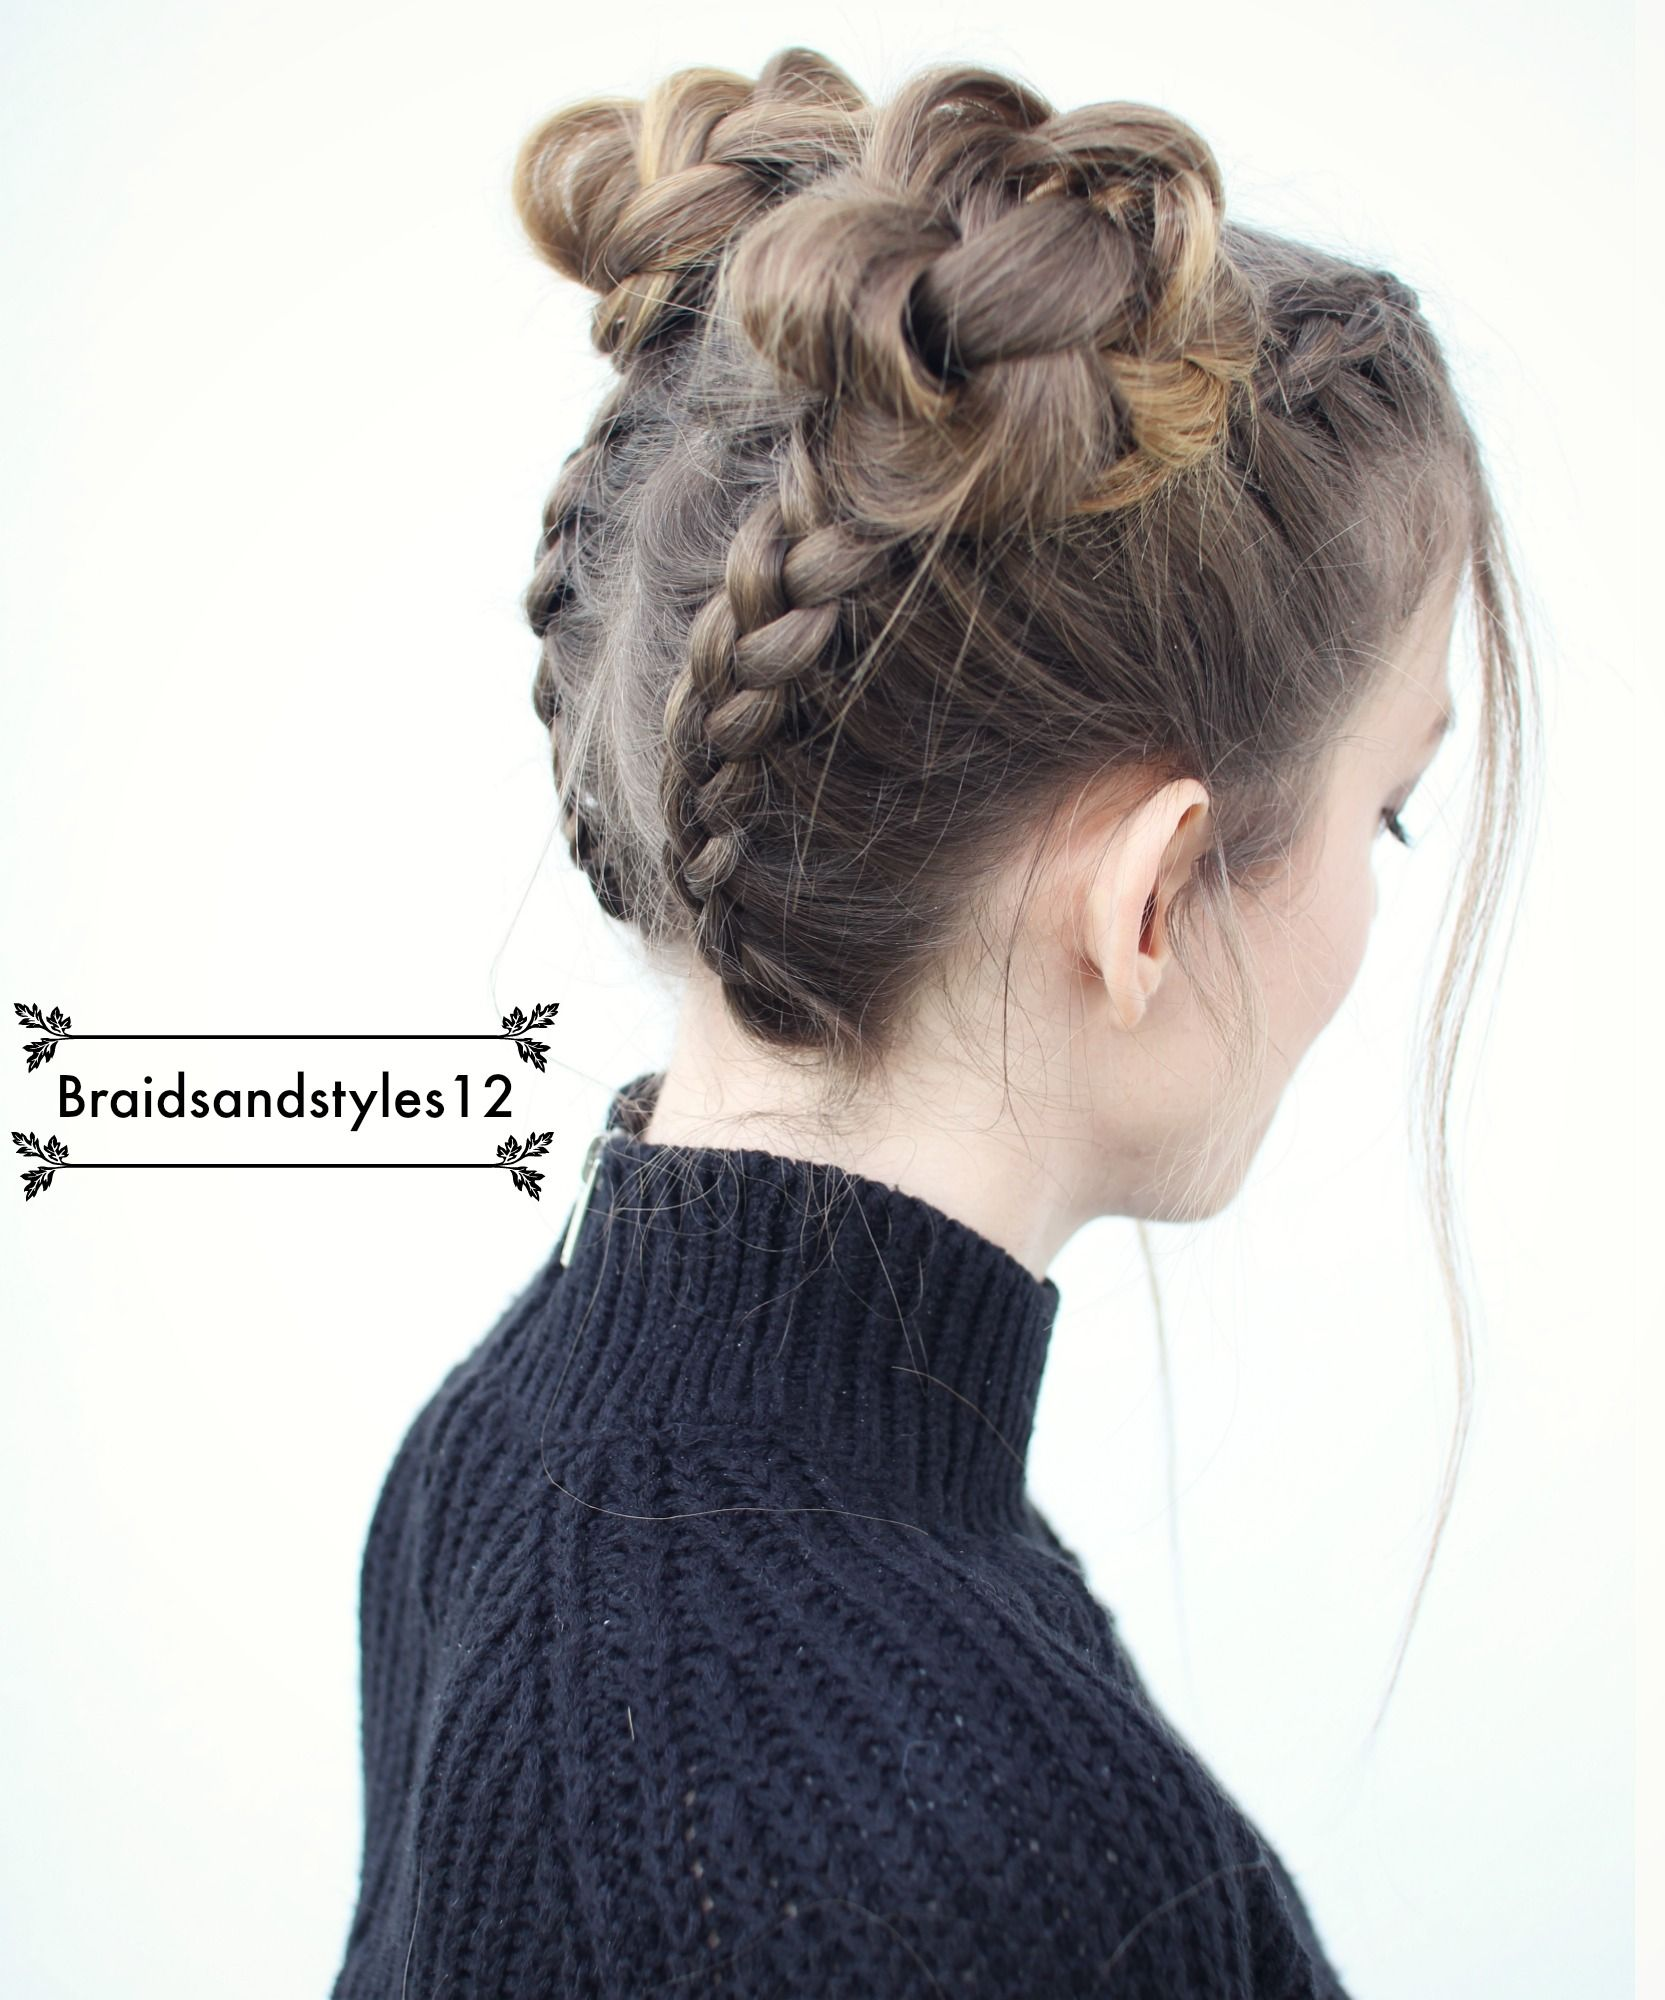 Braidsandstyles hair style pinterest hair styles braids and